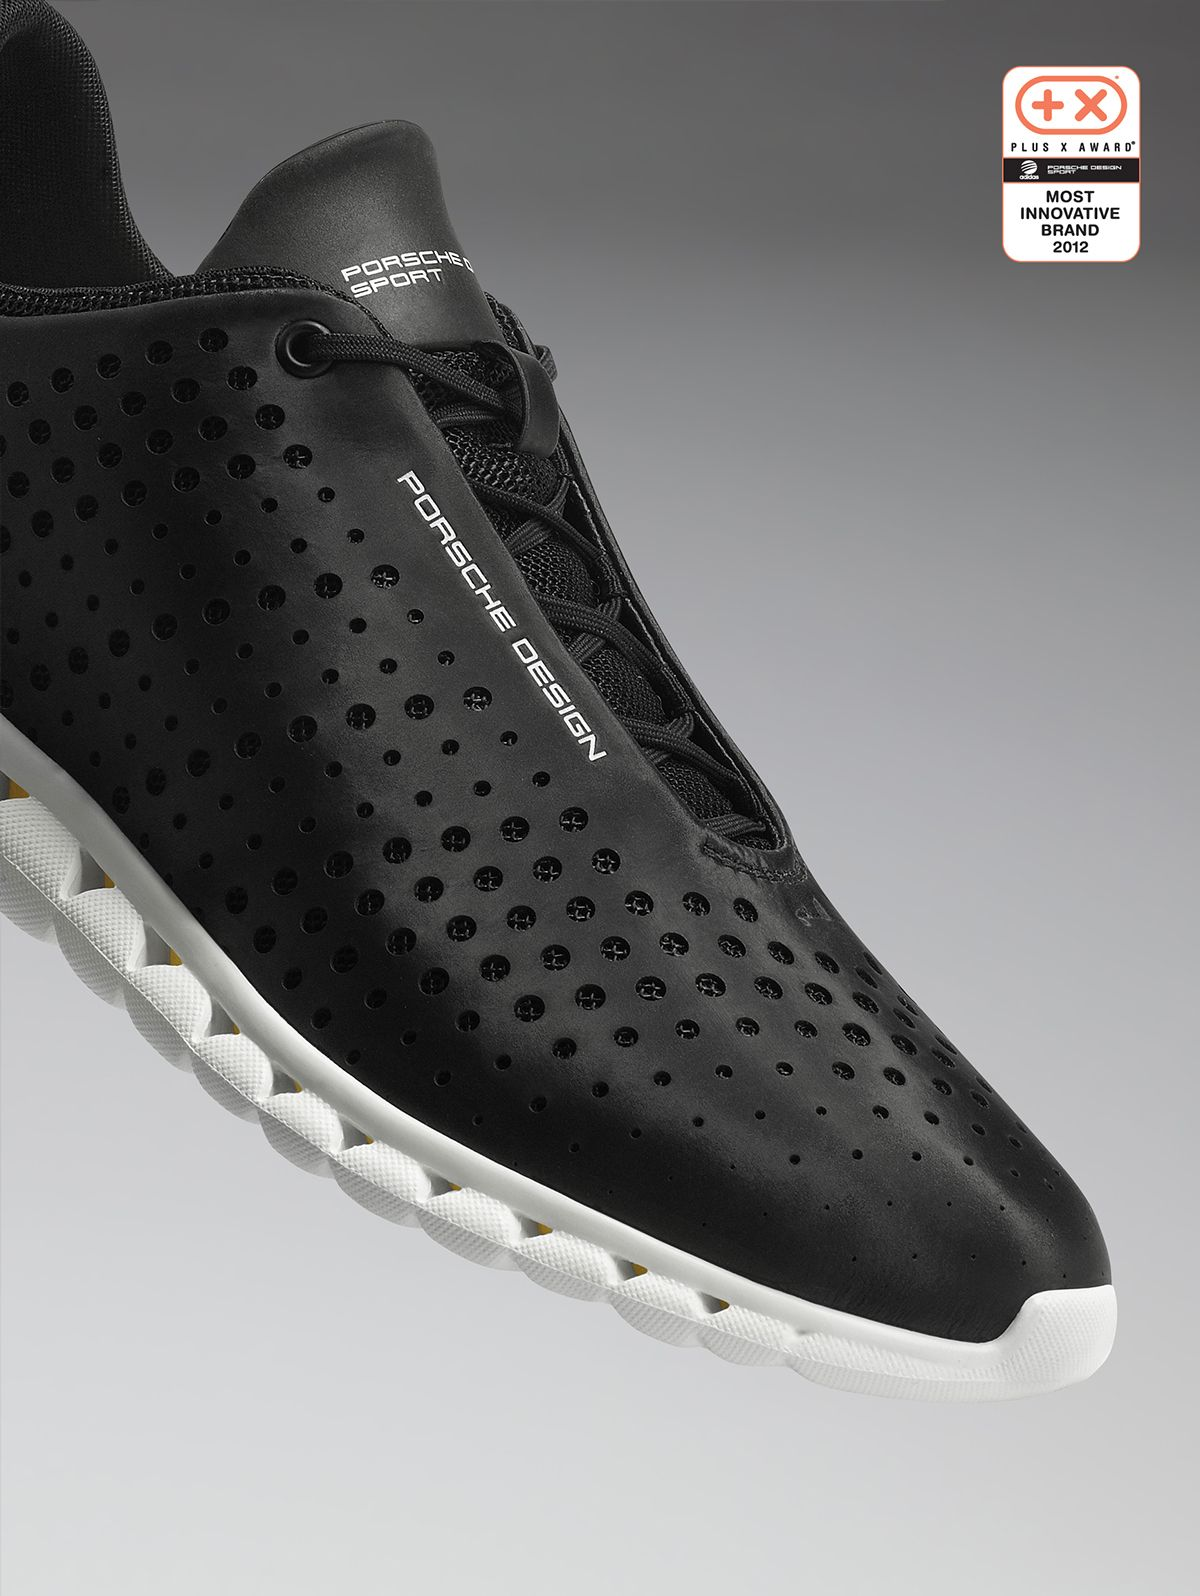 059cd576f89 Adidas X Porsche Design Sport Easy Concept on Behance